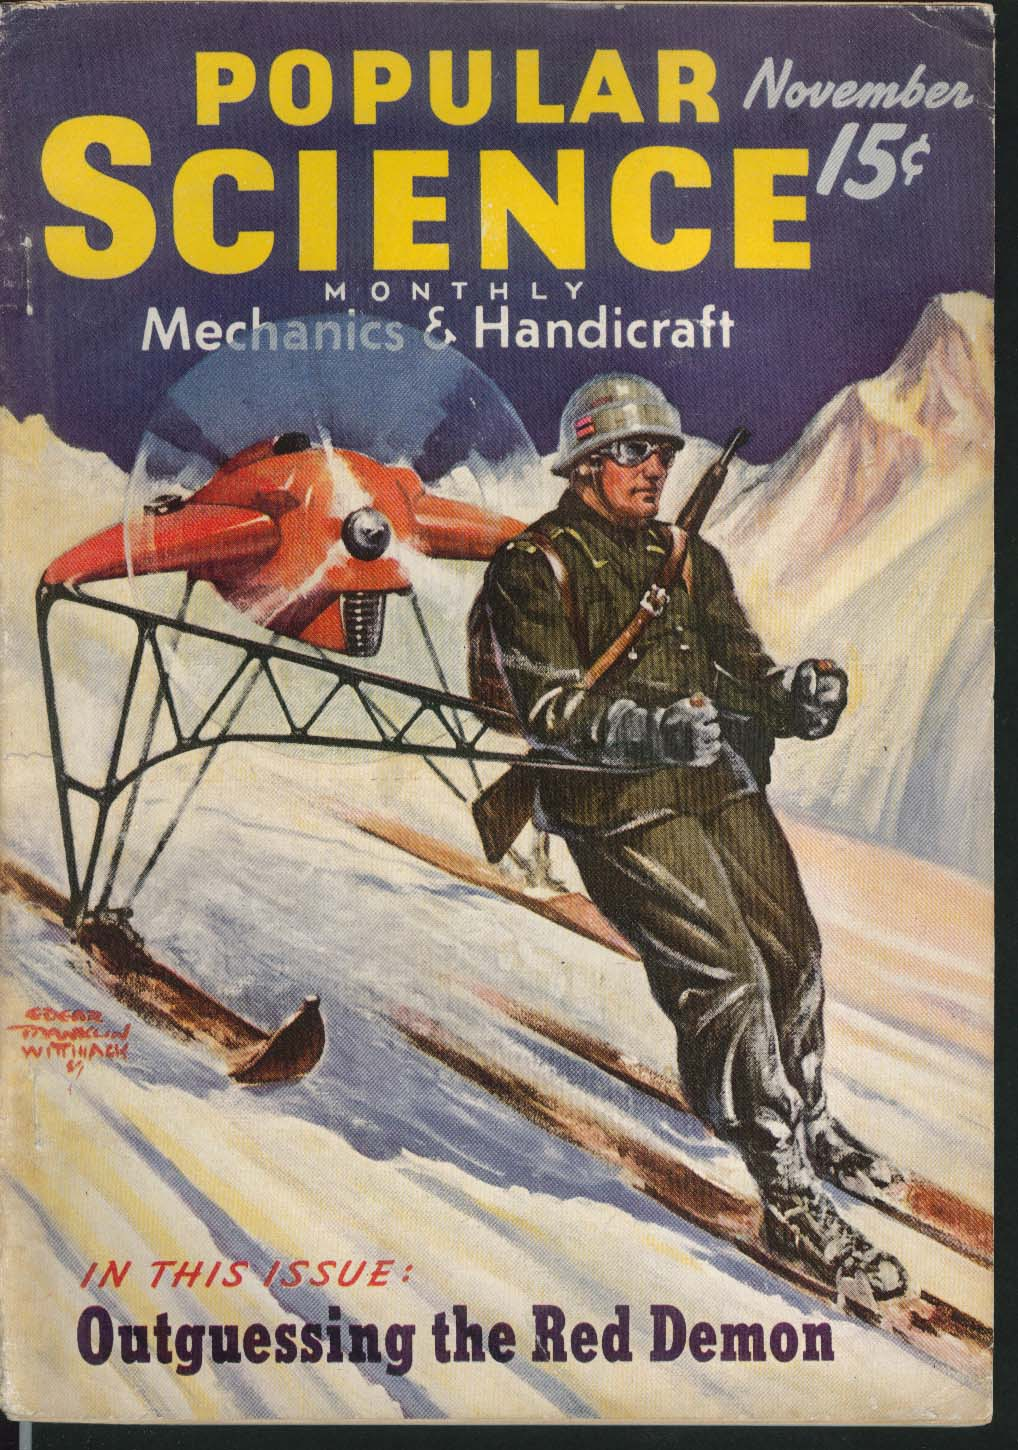 POPULAR SCIENCE Antarctic American Territory Model-Plane Champions 11 1939